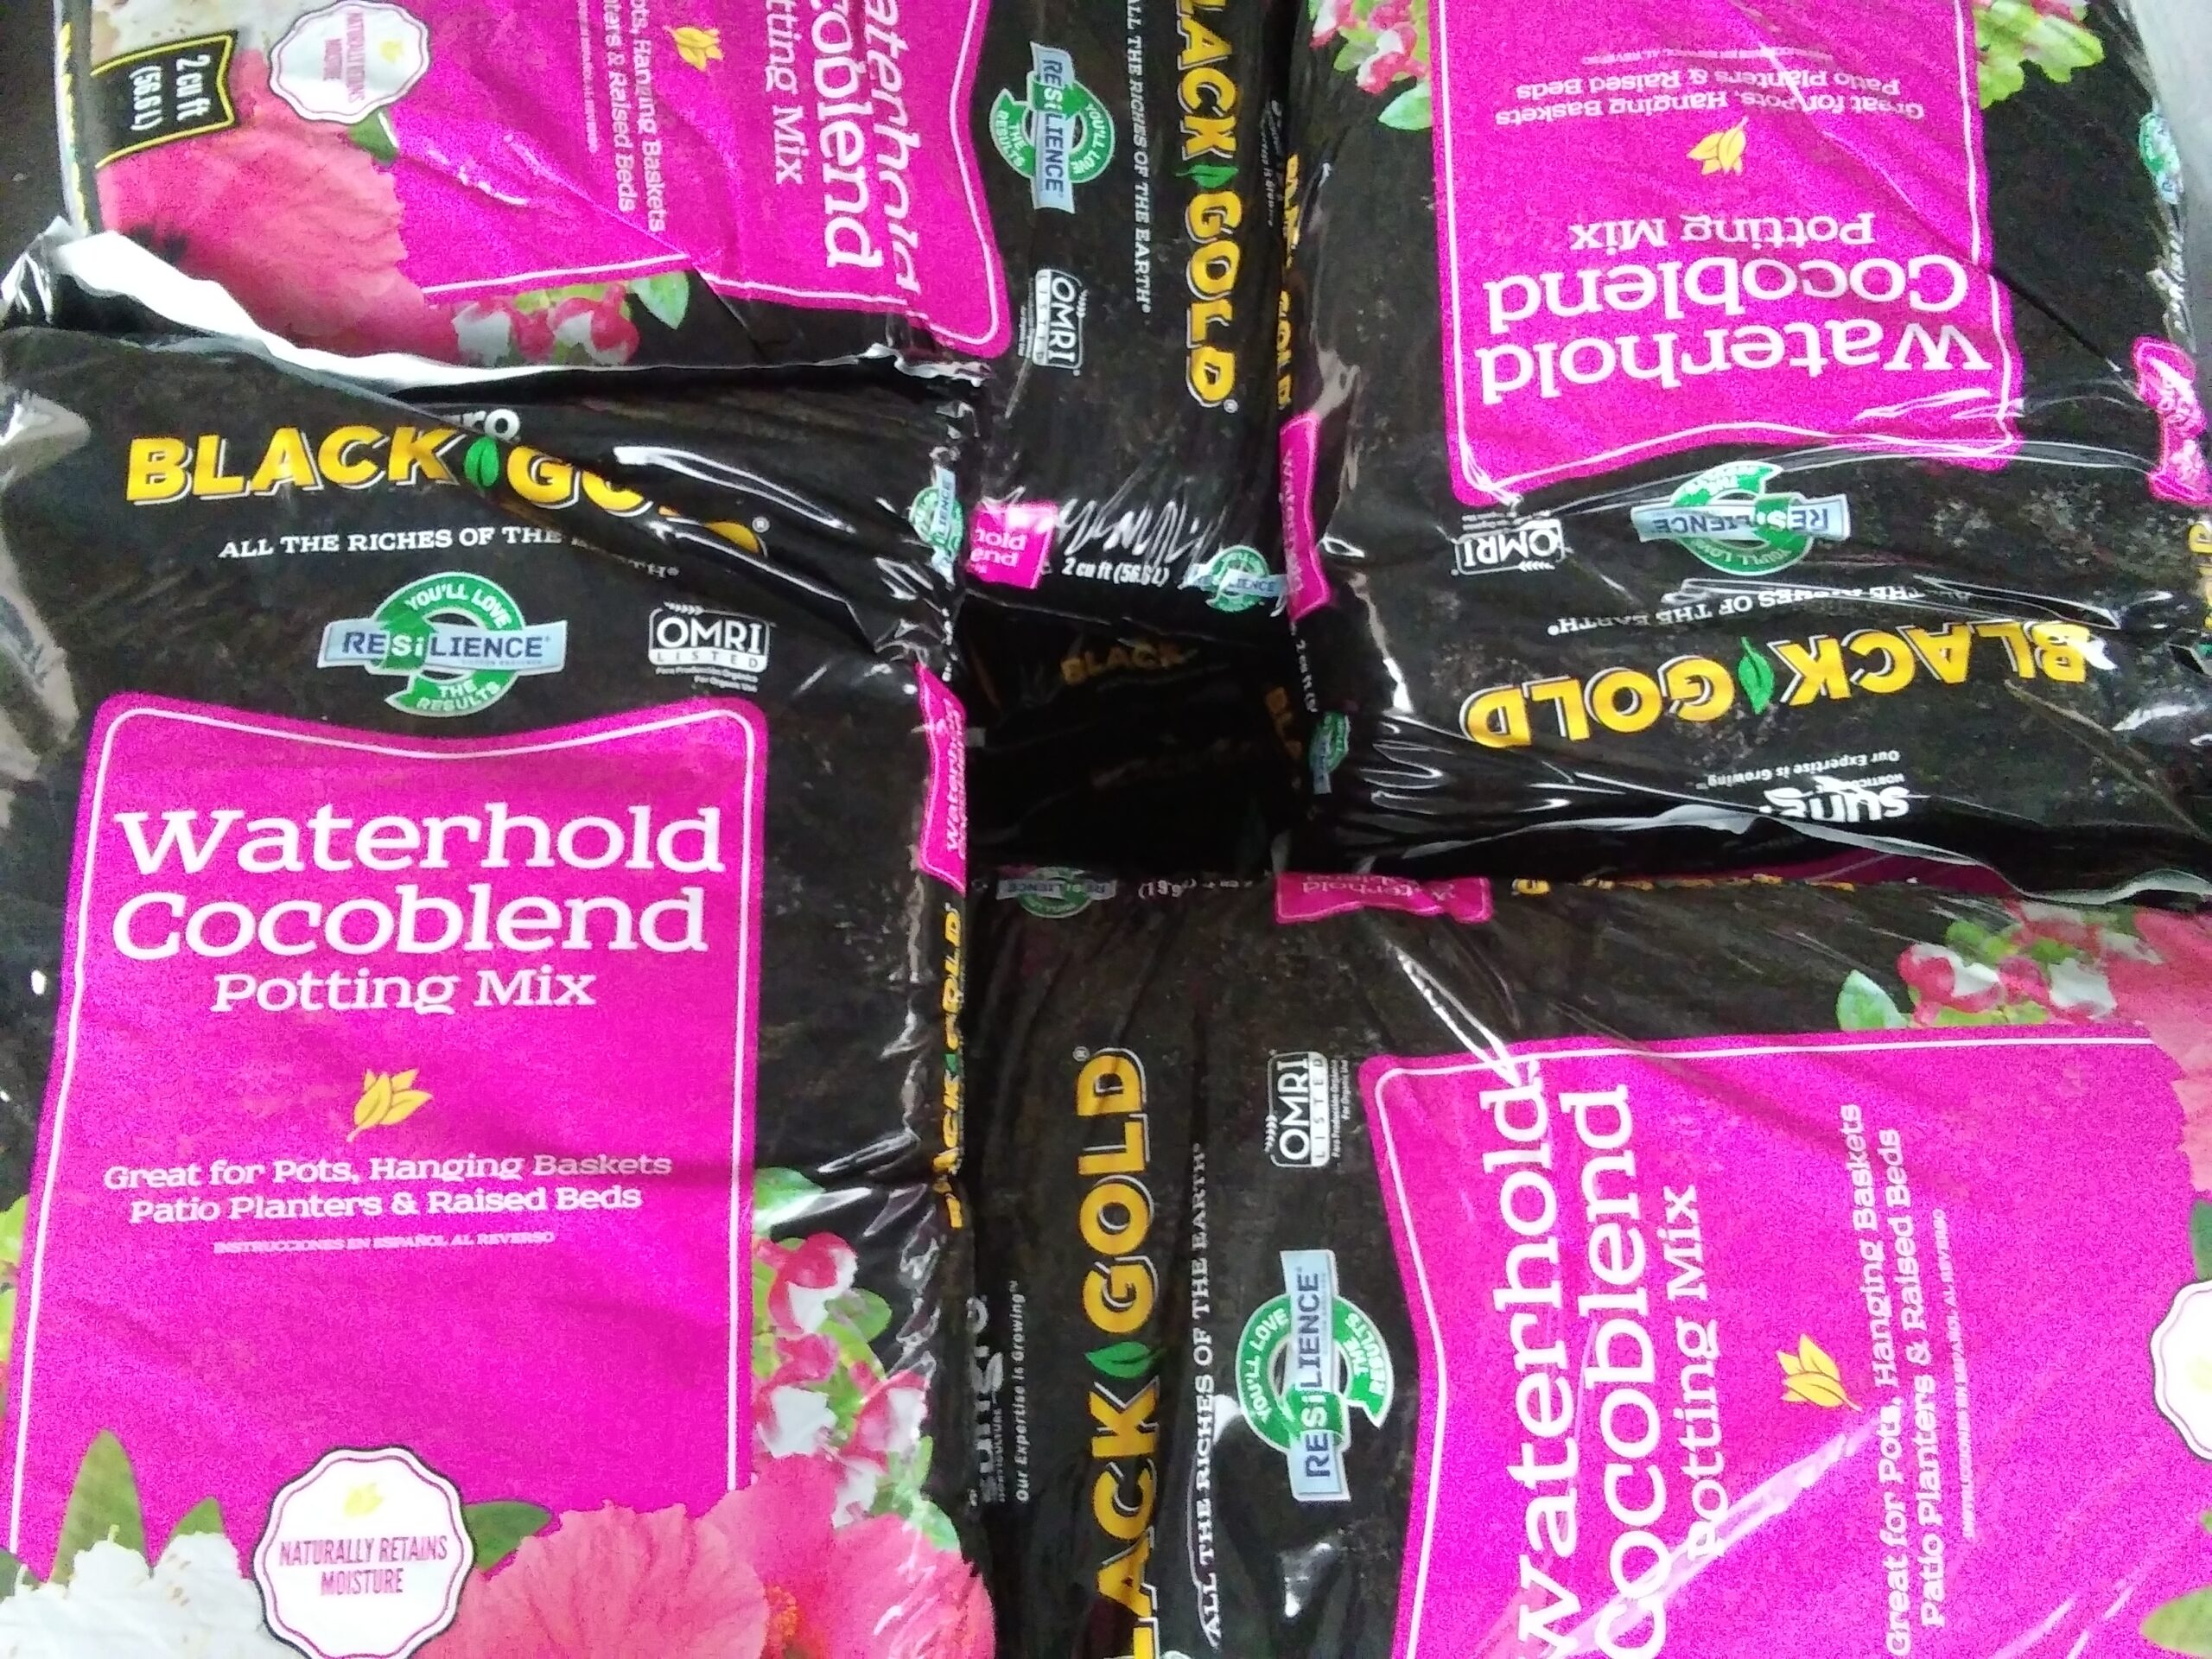 2cf Black Gold Waterhold Potting Soil Organic Concentrates Inc